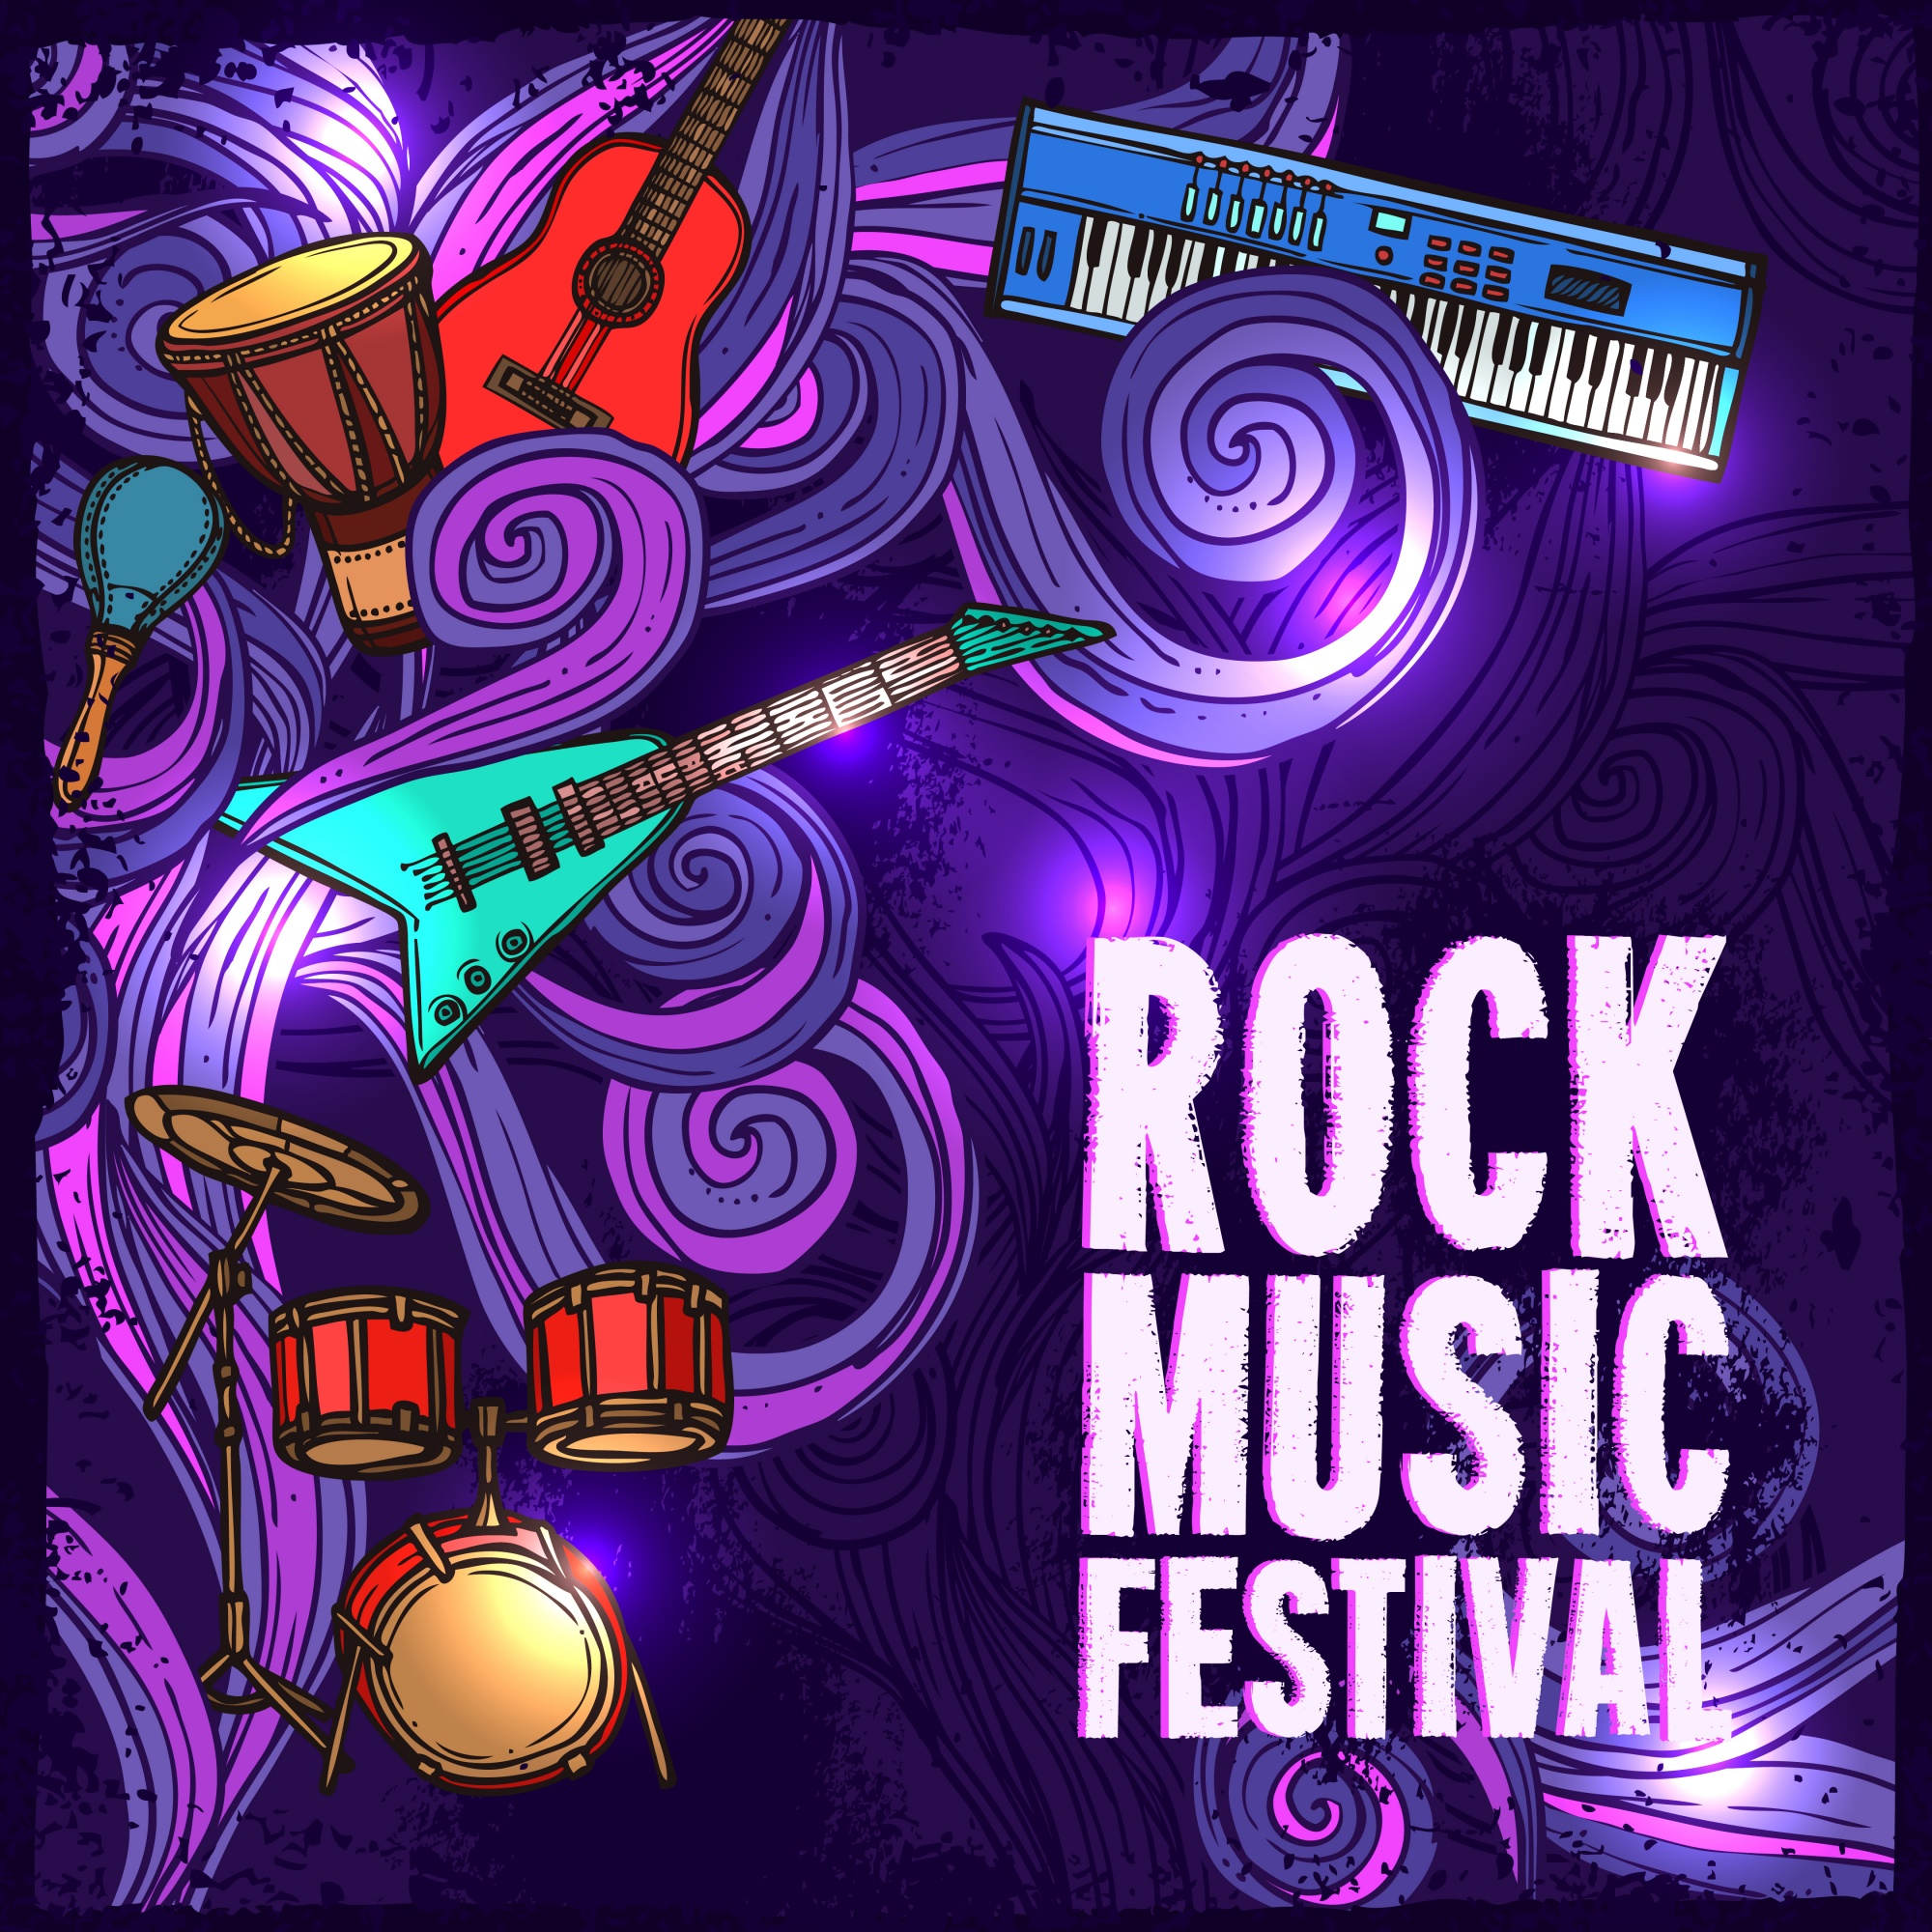 Rock music festival poster with electric guitar drums keyboard instruments vector illustration